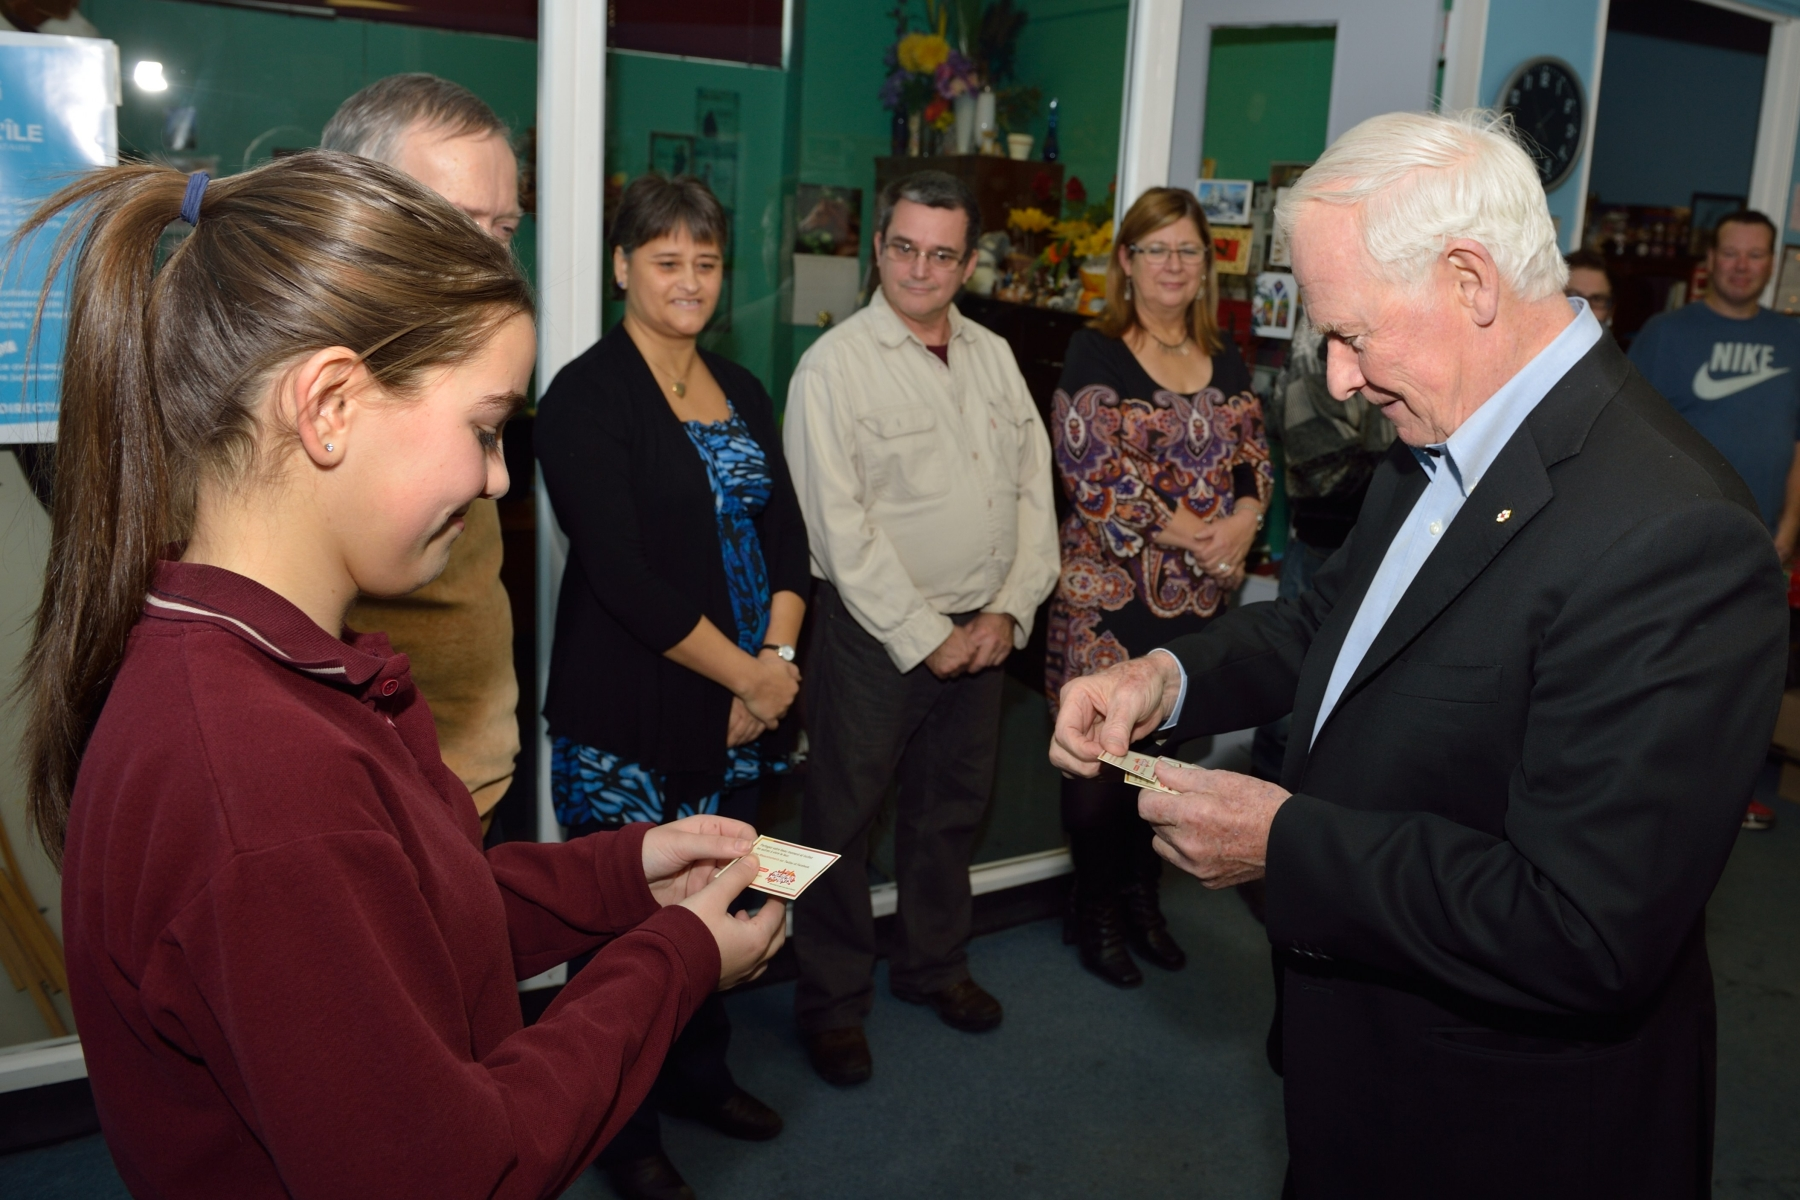 On December 11, 2013, His Excellency visited La Manne de l'île Food Bank, in Gatineau, Quebec.